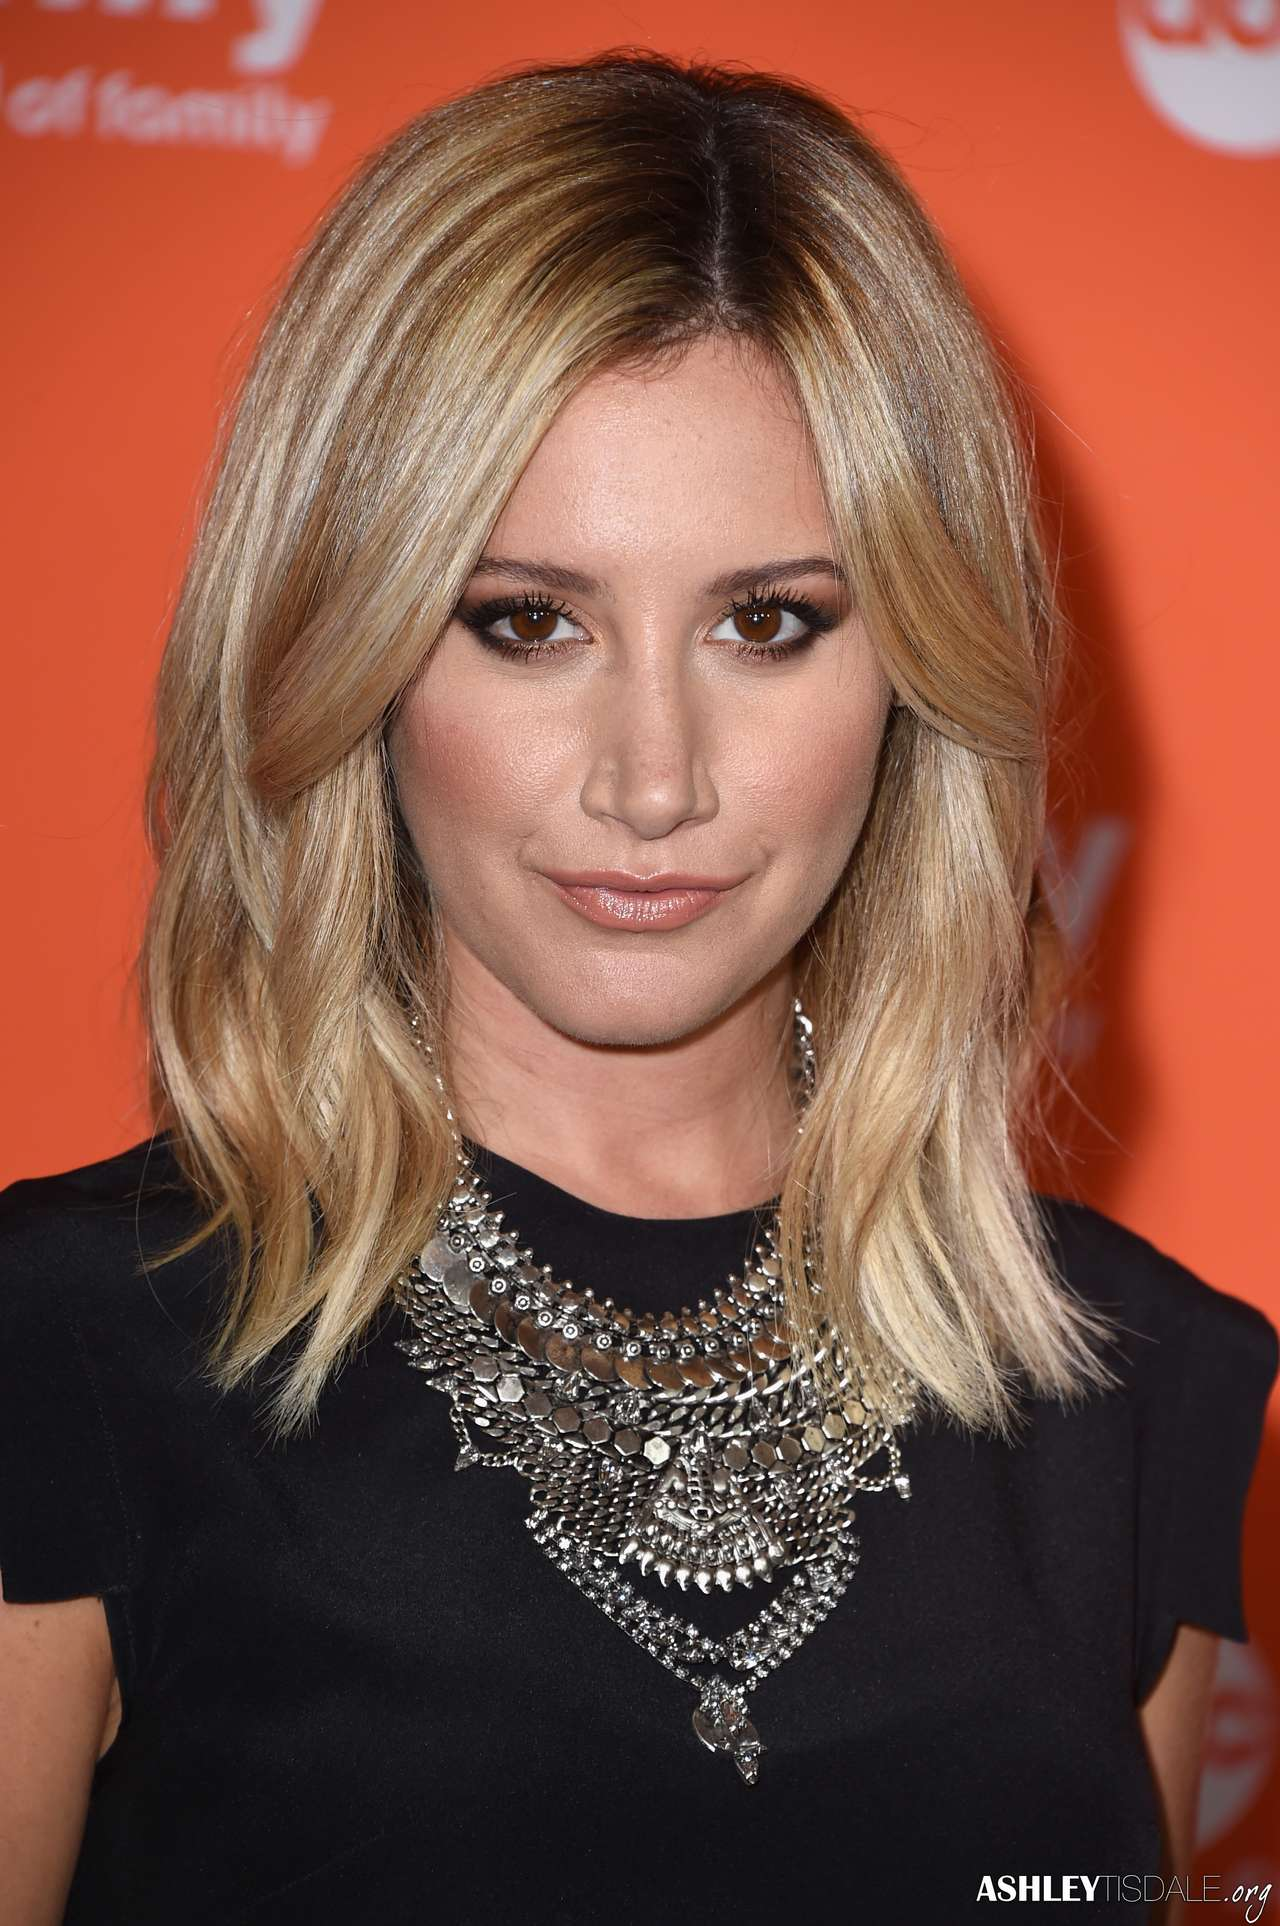 Ashley Tisdale 2014 : Ashley Tisdale at 2014 Disney ABC TCA Summer Press Tour in Beverly Hills -16